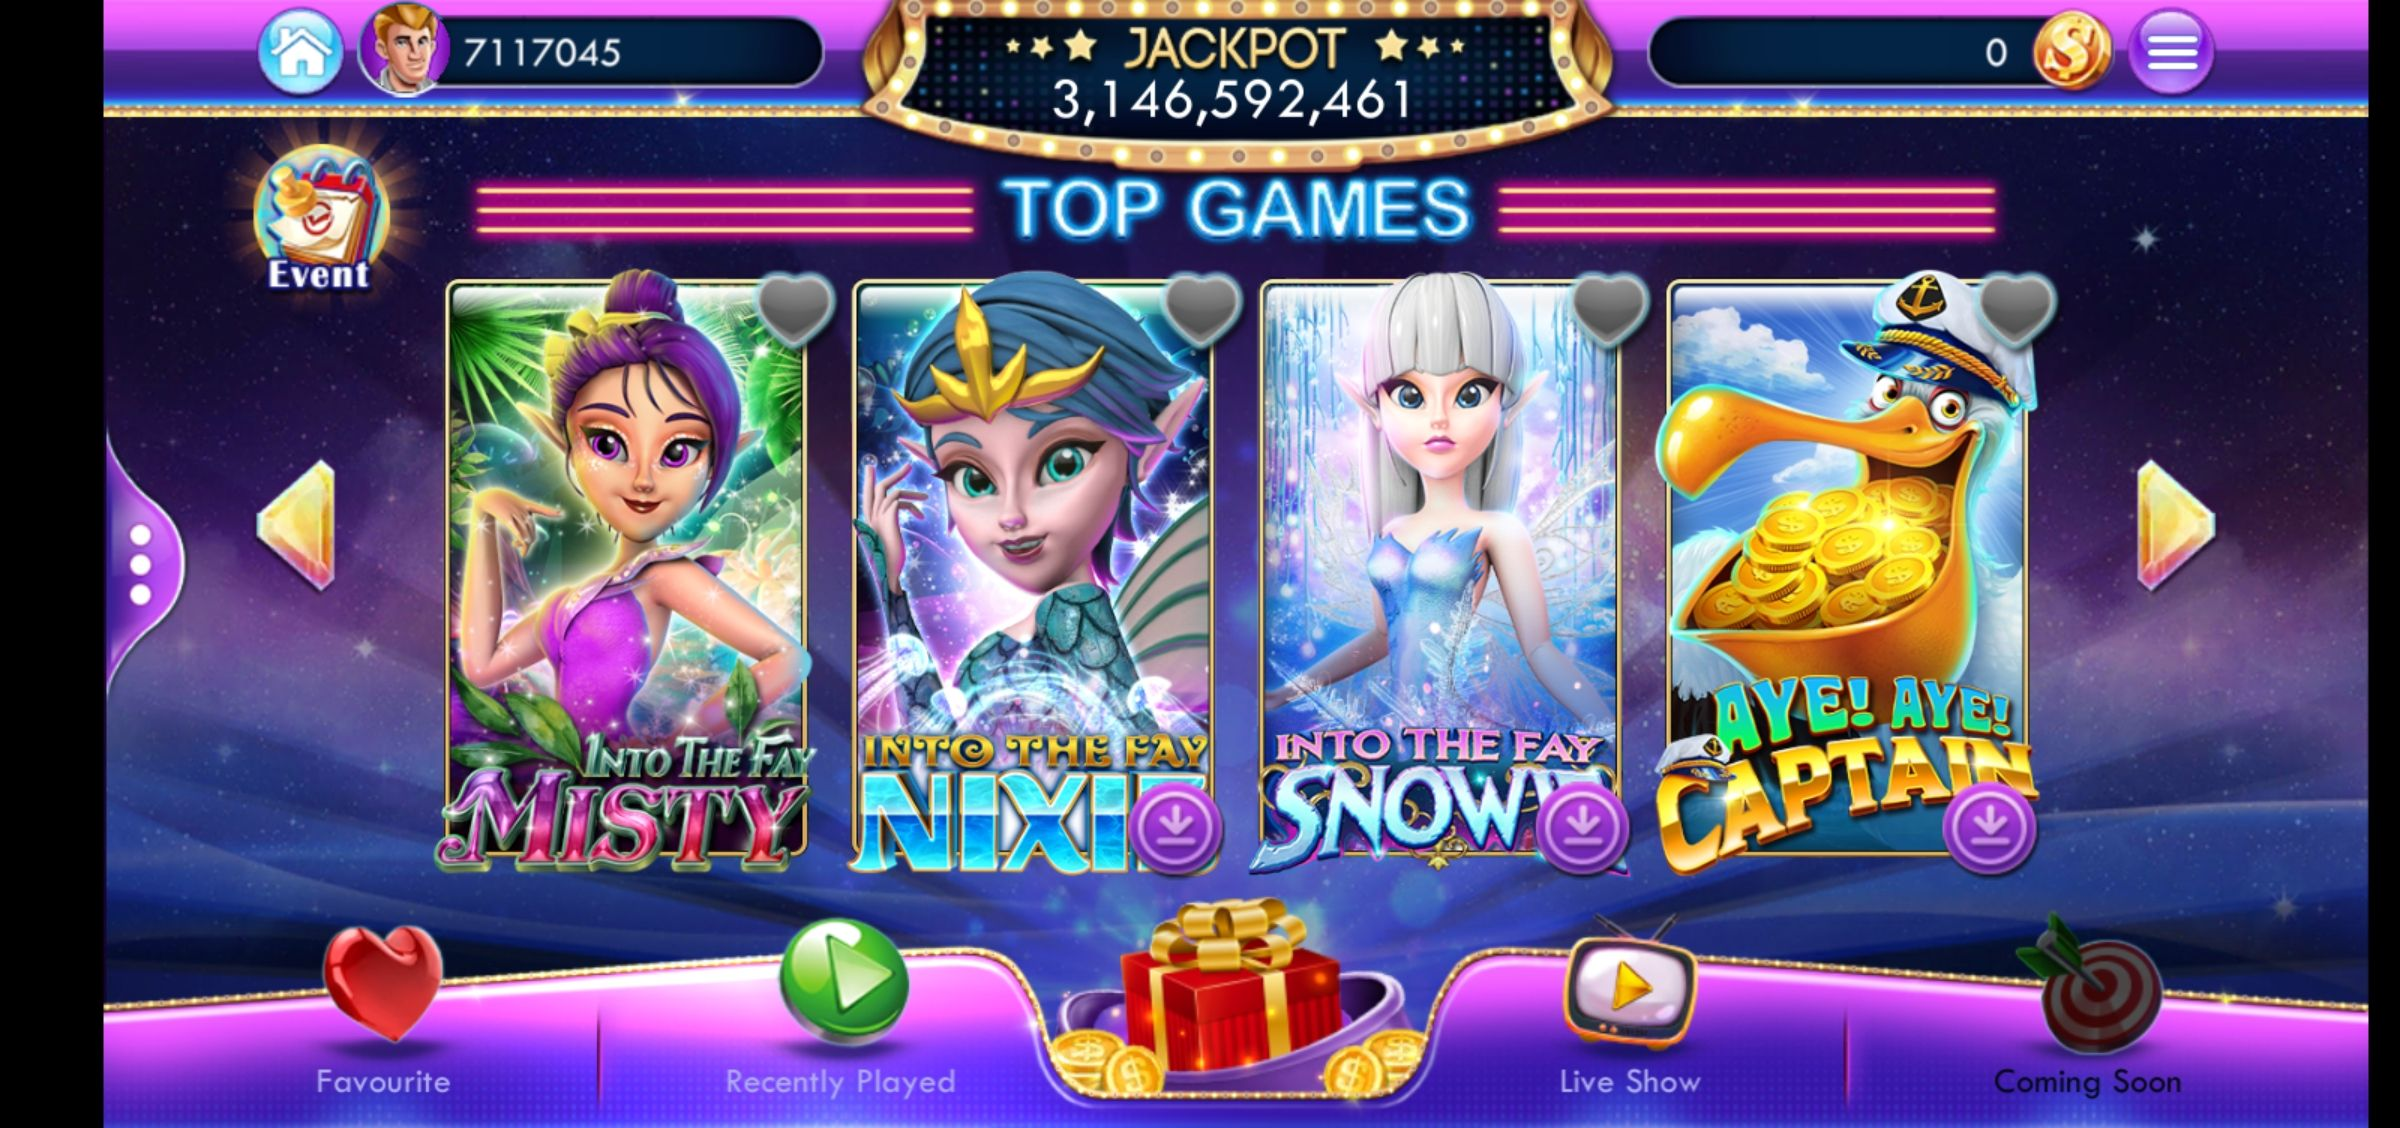 Live22 Apk Download 2020 2021 Available Devices Android And Ios Live22 Download Game Client App Fre Download Games Free Casino Slot Games Casino Slot Games